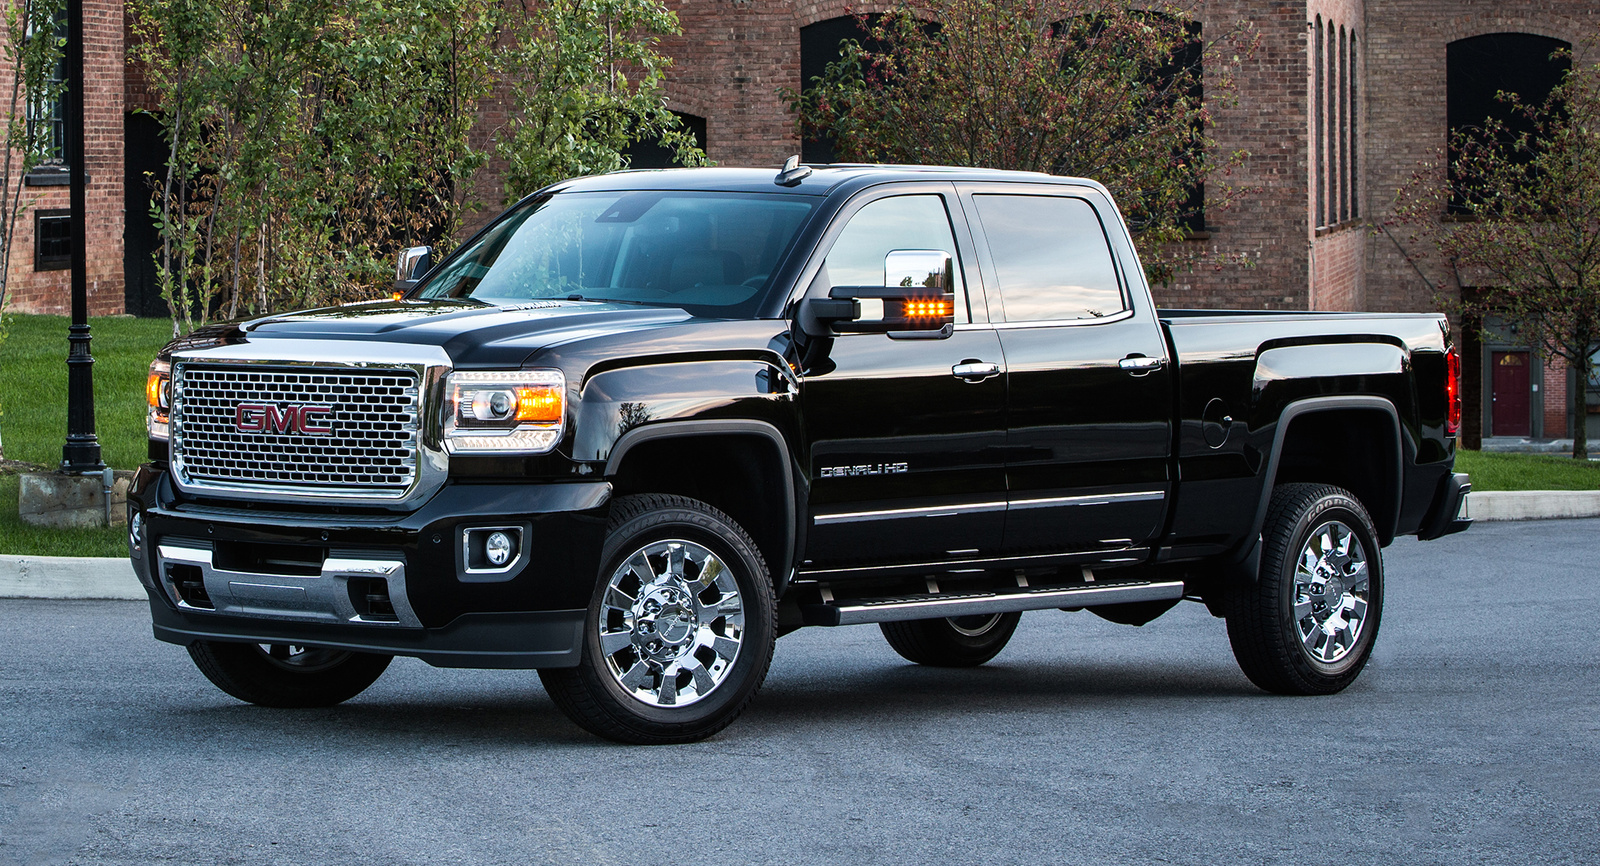 2015 gmc sierra 2500 all terrain car interior design. Black Bedroom Furniture Sets. Home Design Ideas